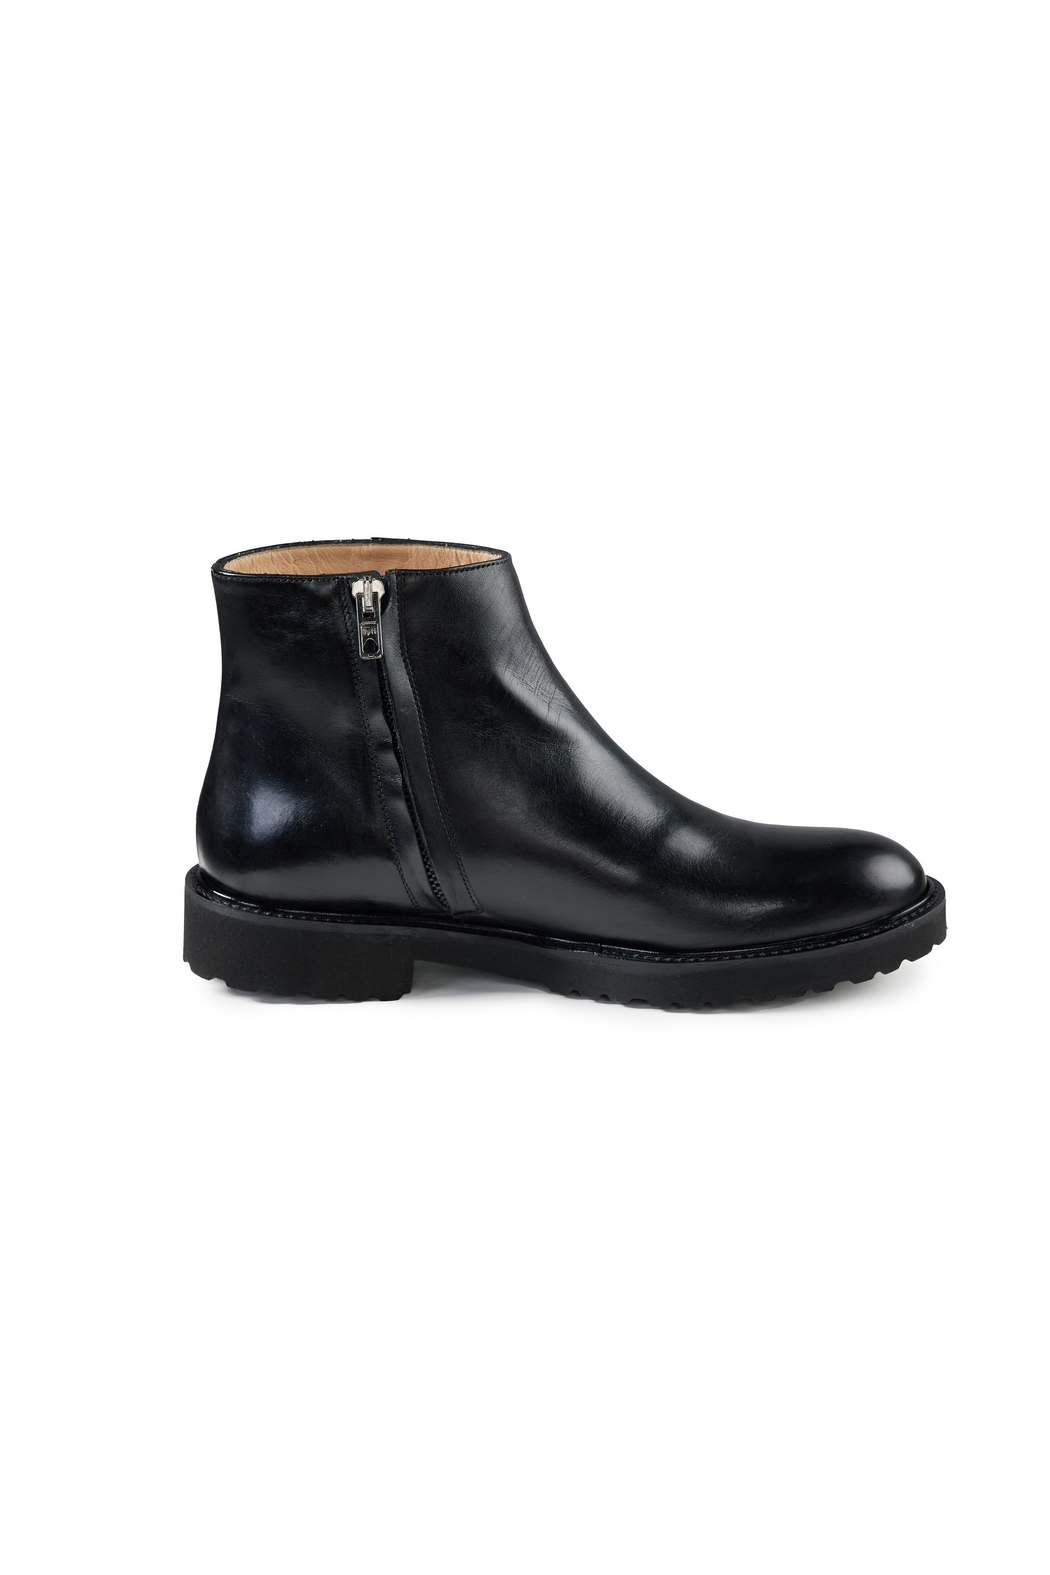 Pascucci Black Ankle Boots - Back Cropped Image